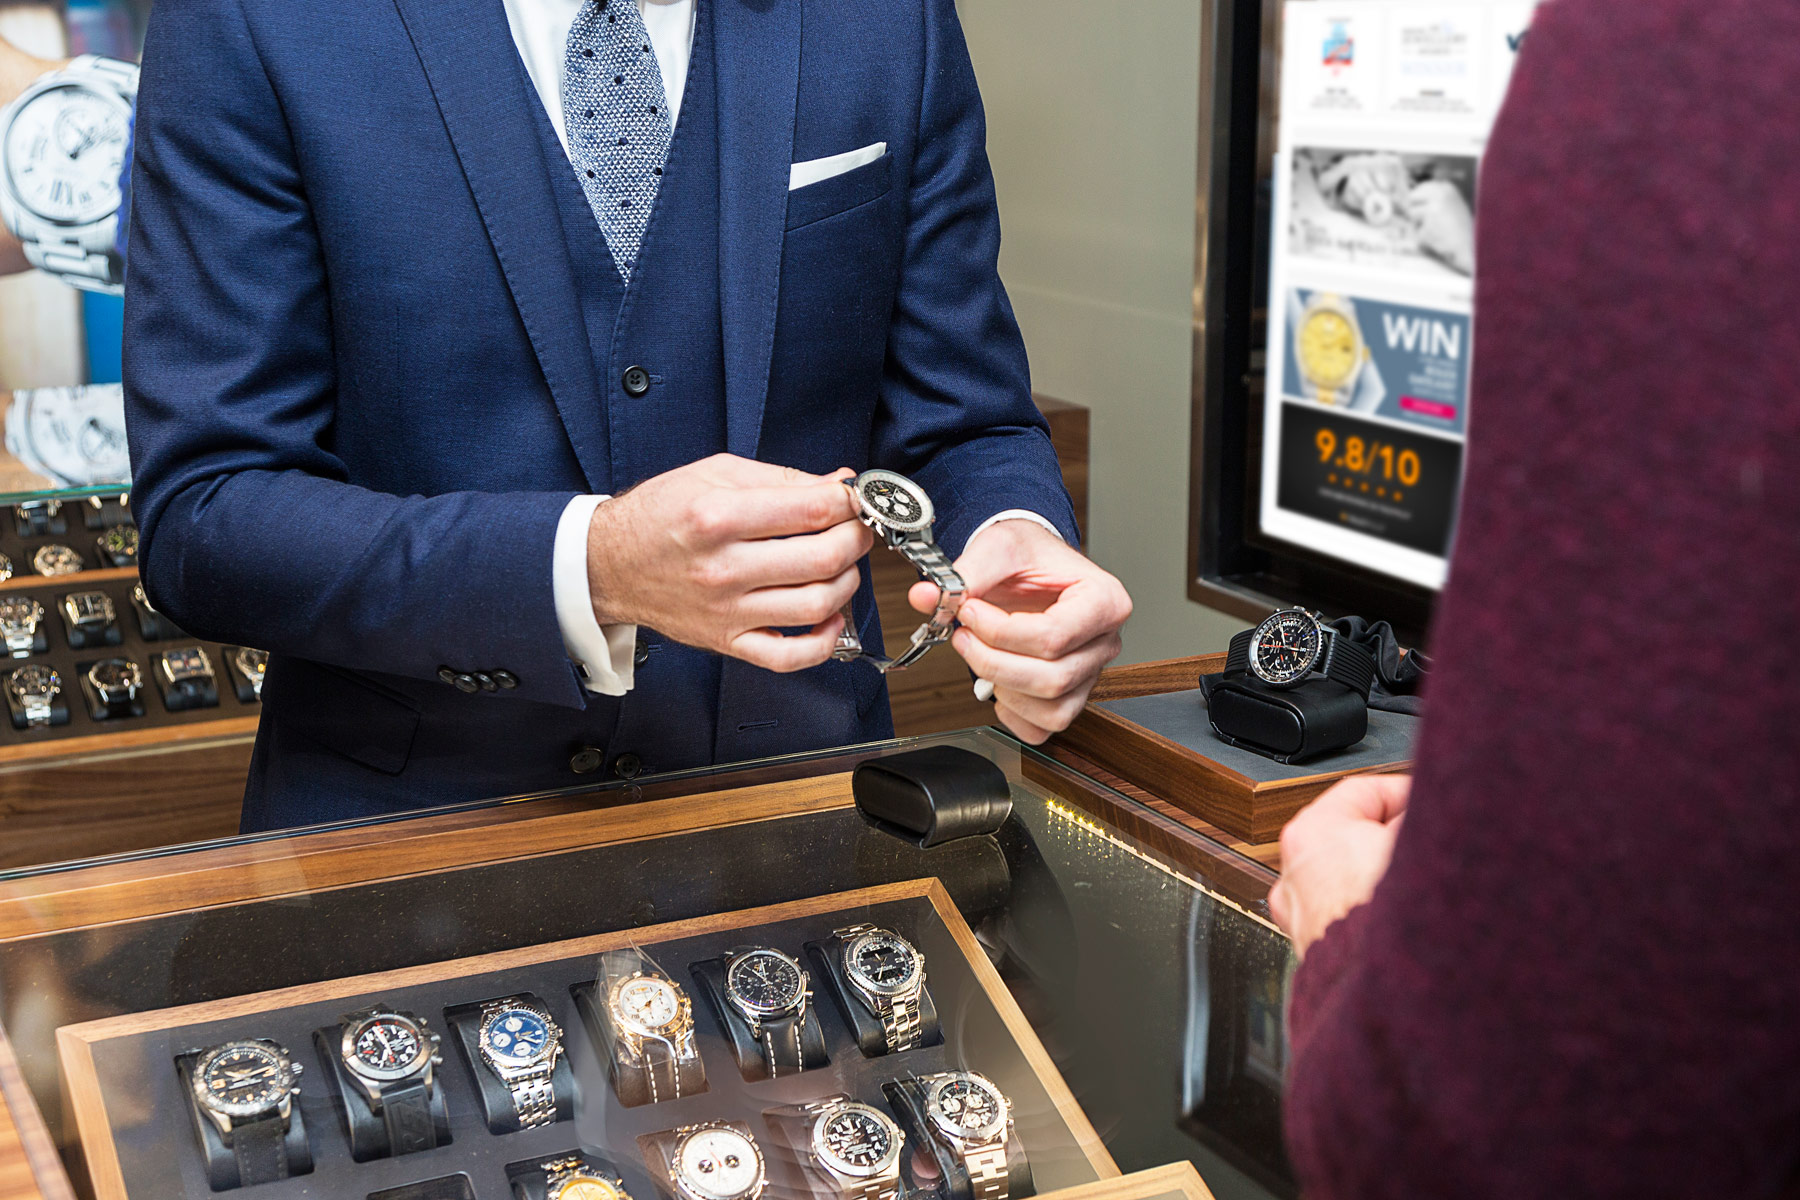 Watchfinder Opens Store In Canary Wharf With Support From HSBC 3